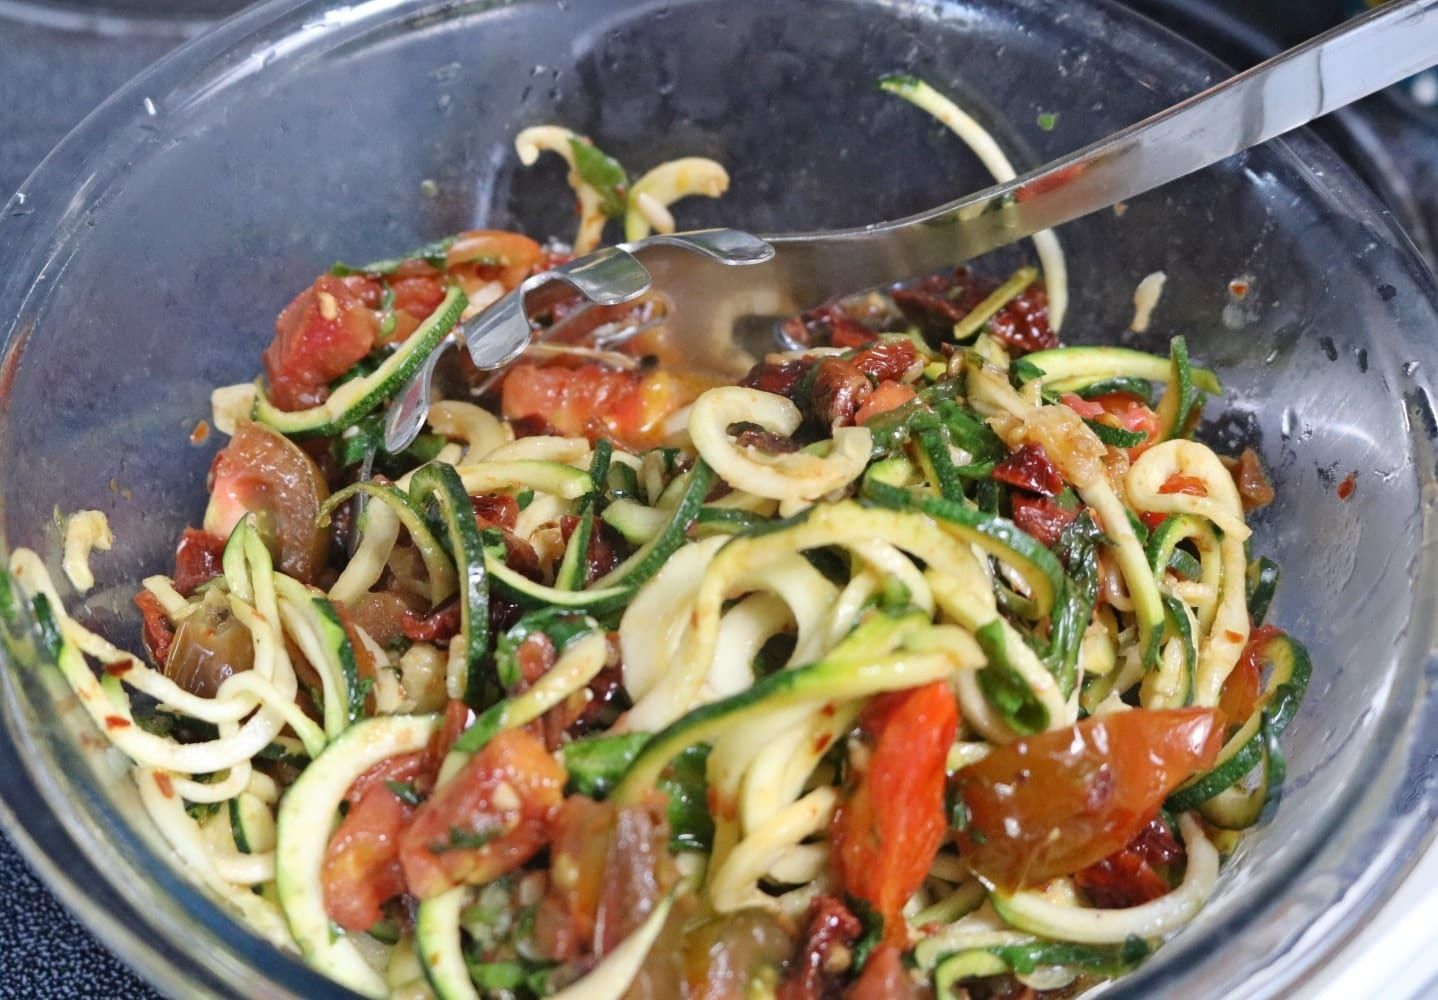 In process image for zucchini noodles pasta: pasta in a pot on the stove being stirred